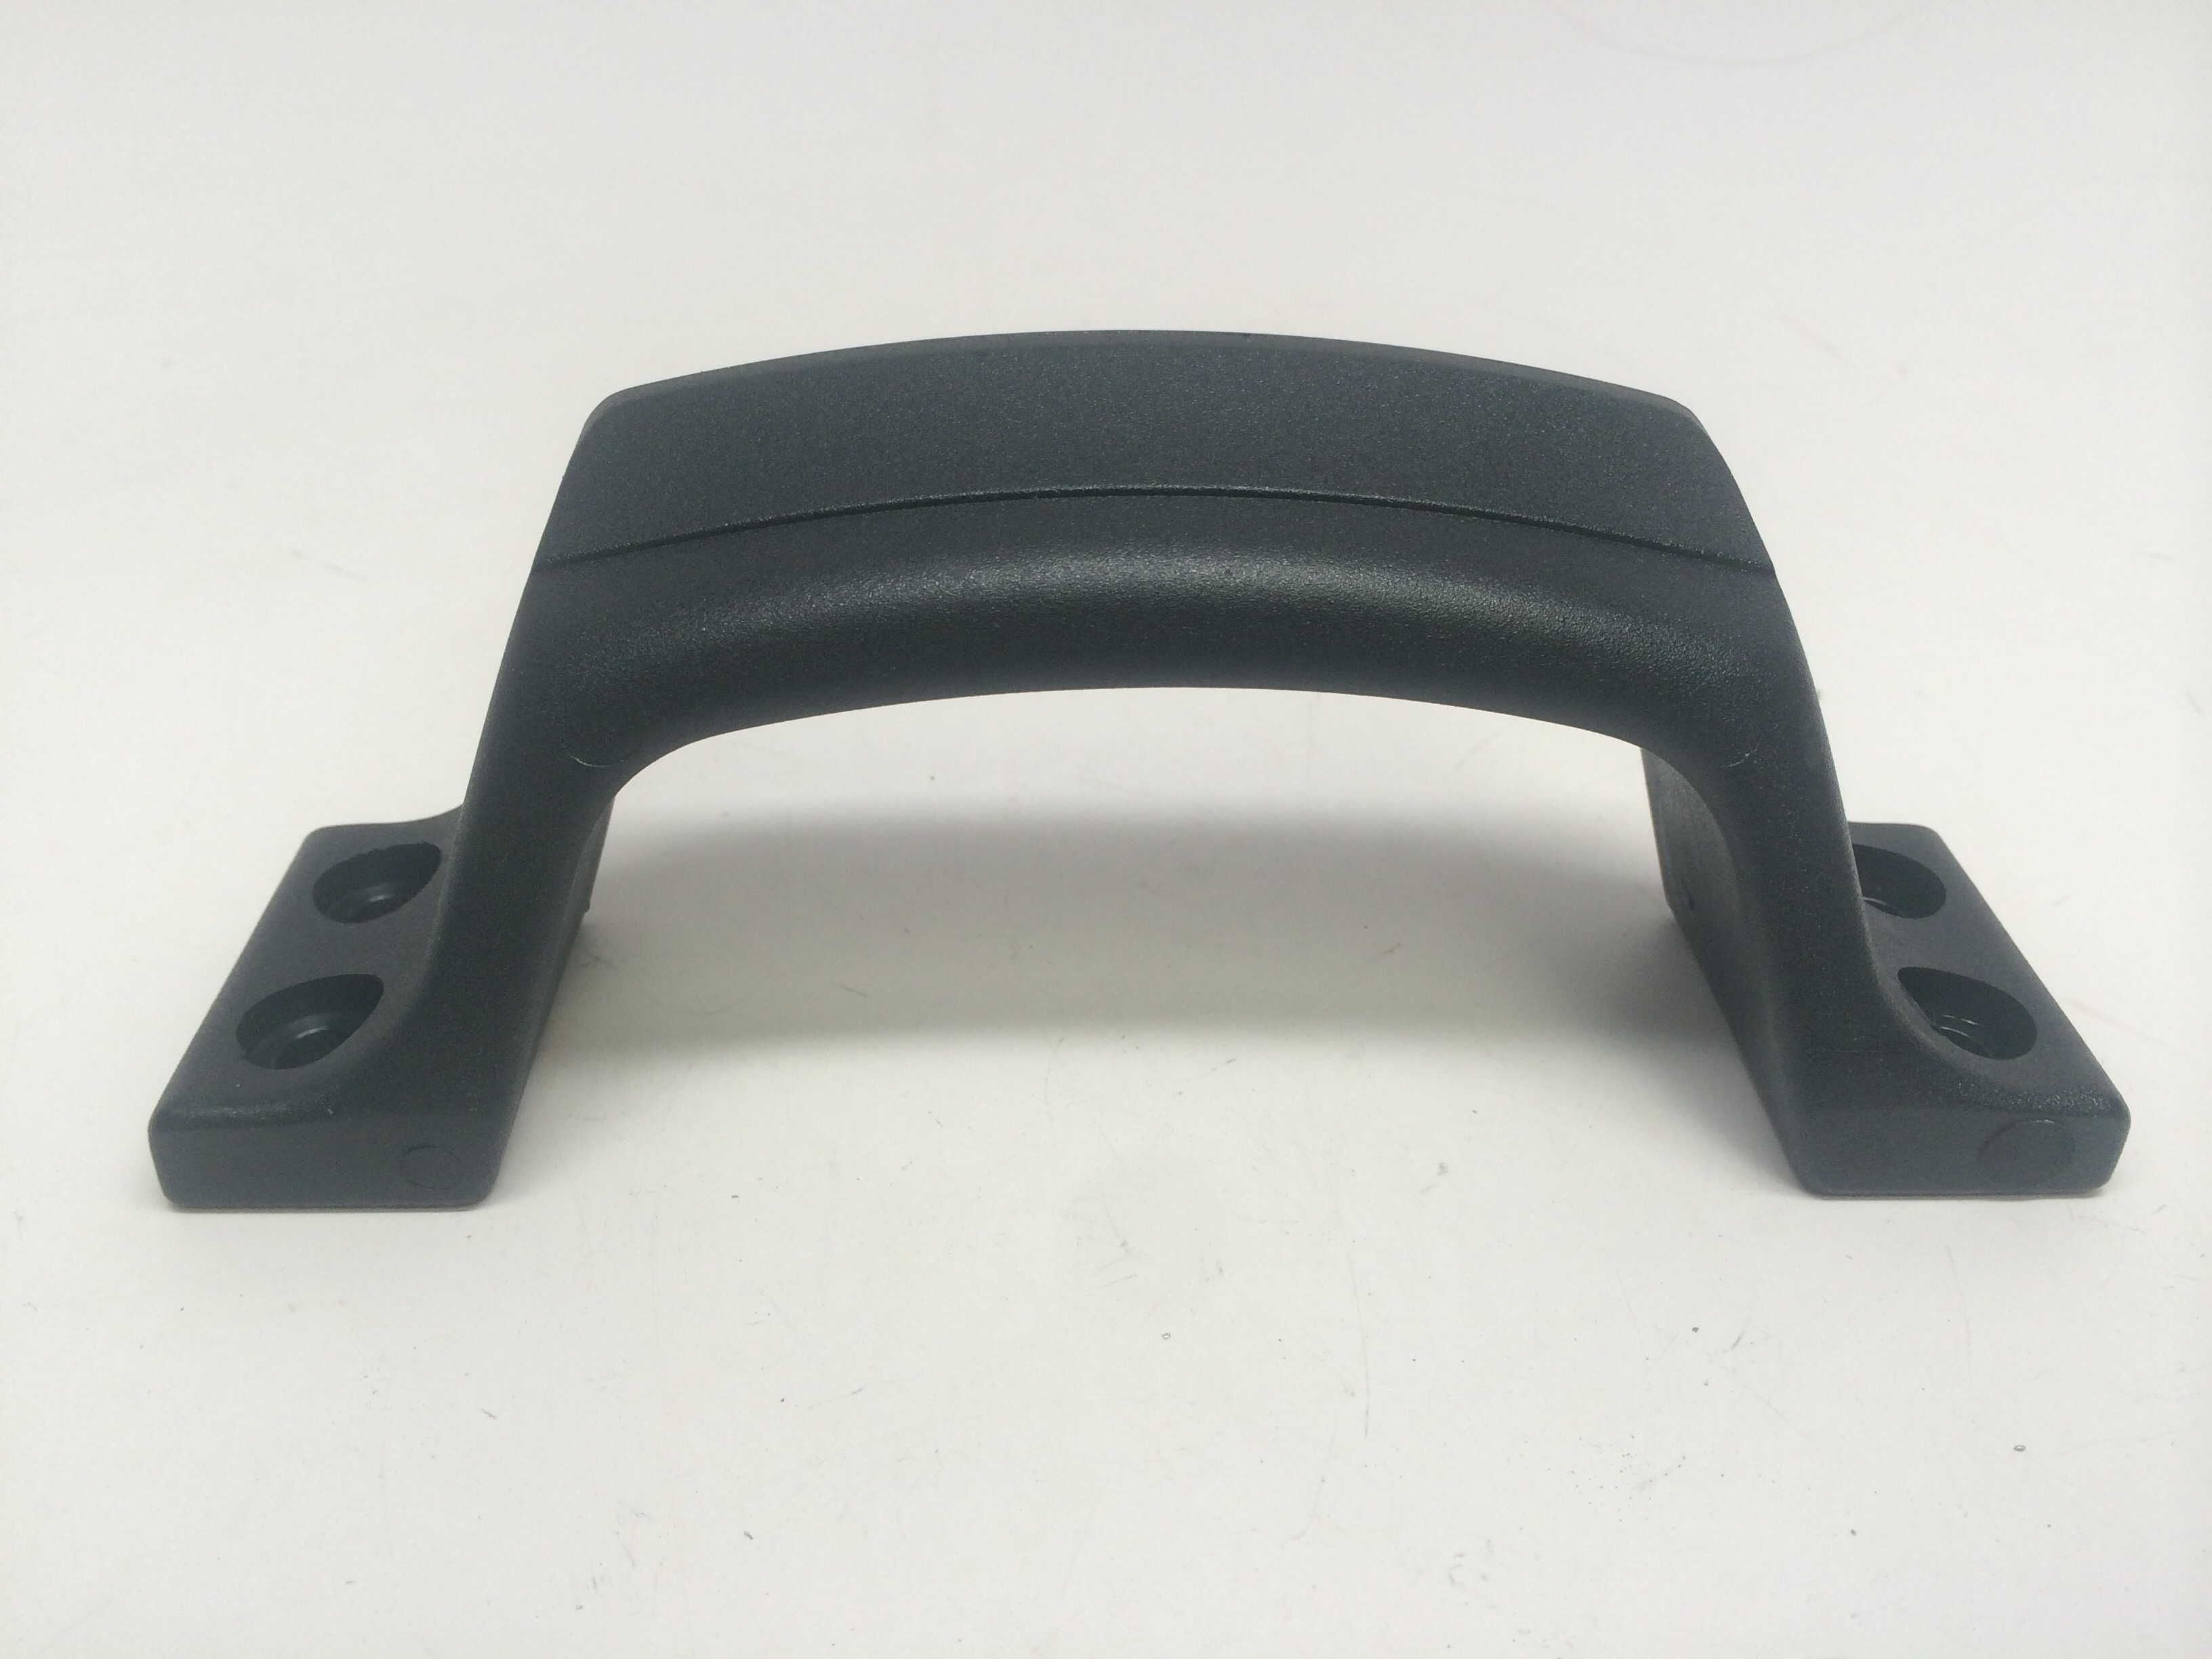 MARINE BOAT BLACK NYLON TRANSOM MOUNT STERN HANDLE/COCKPIT STEP